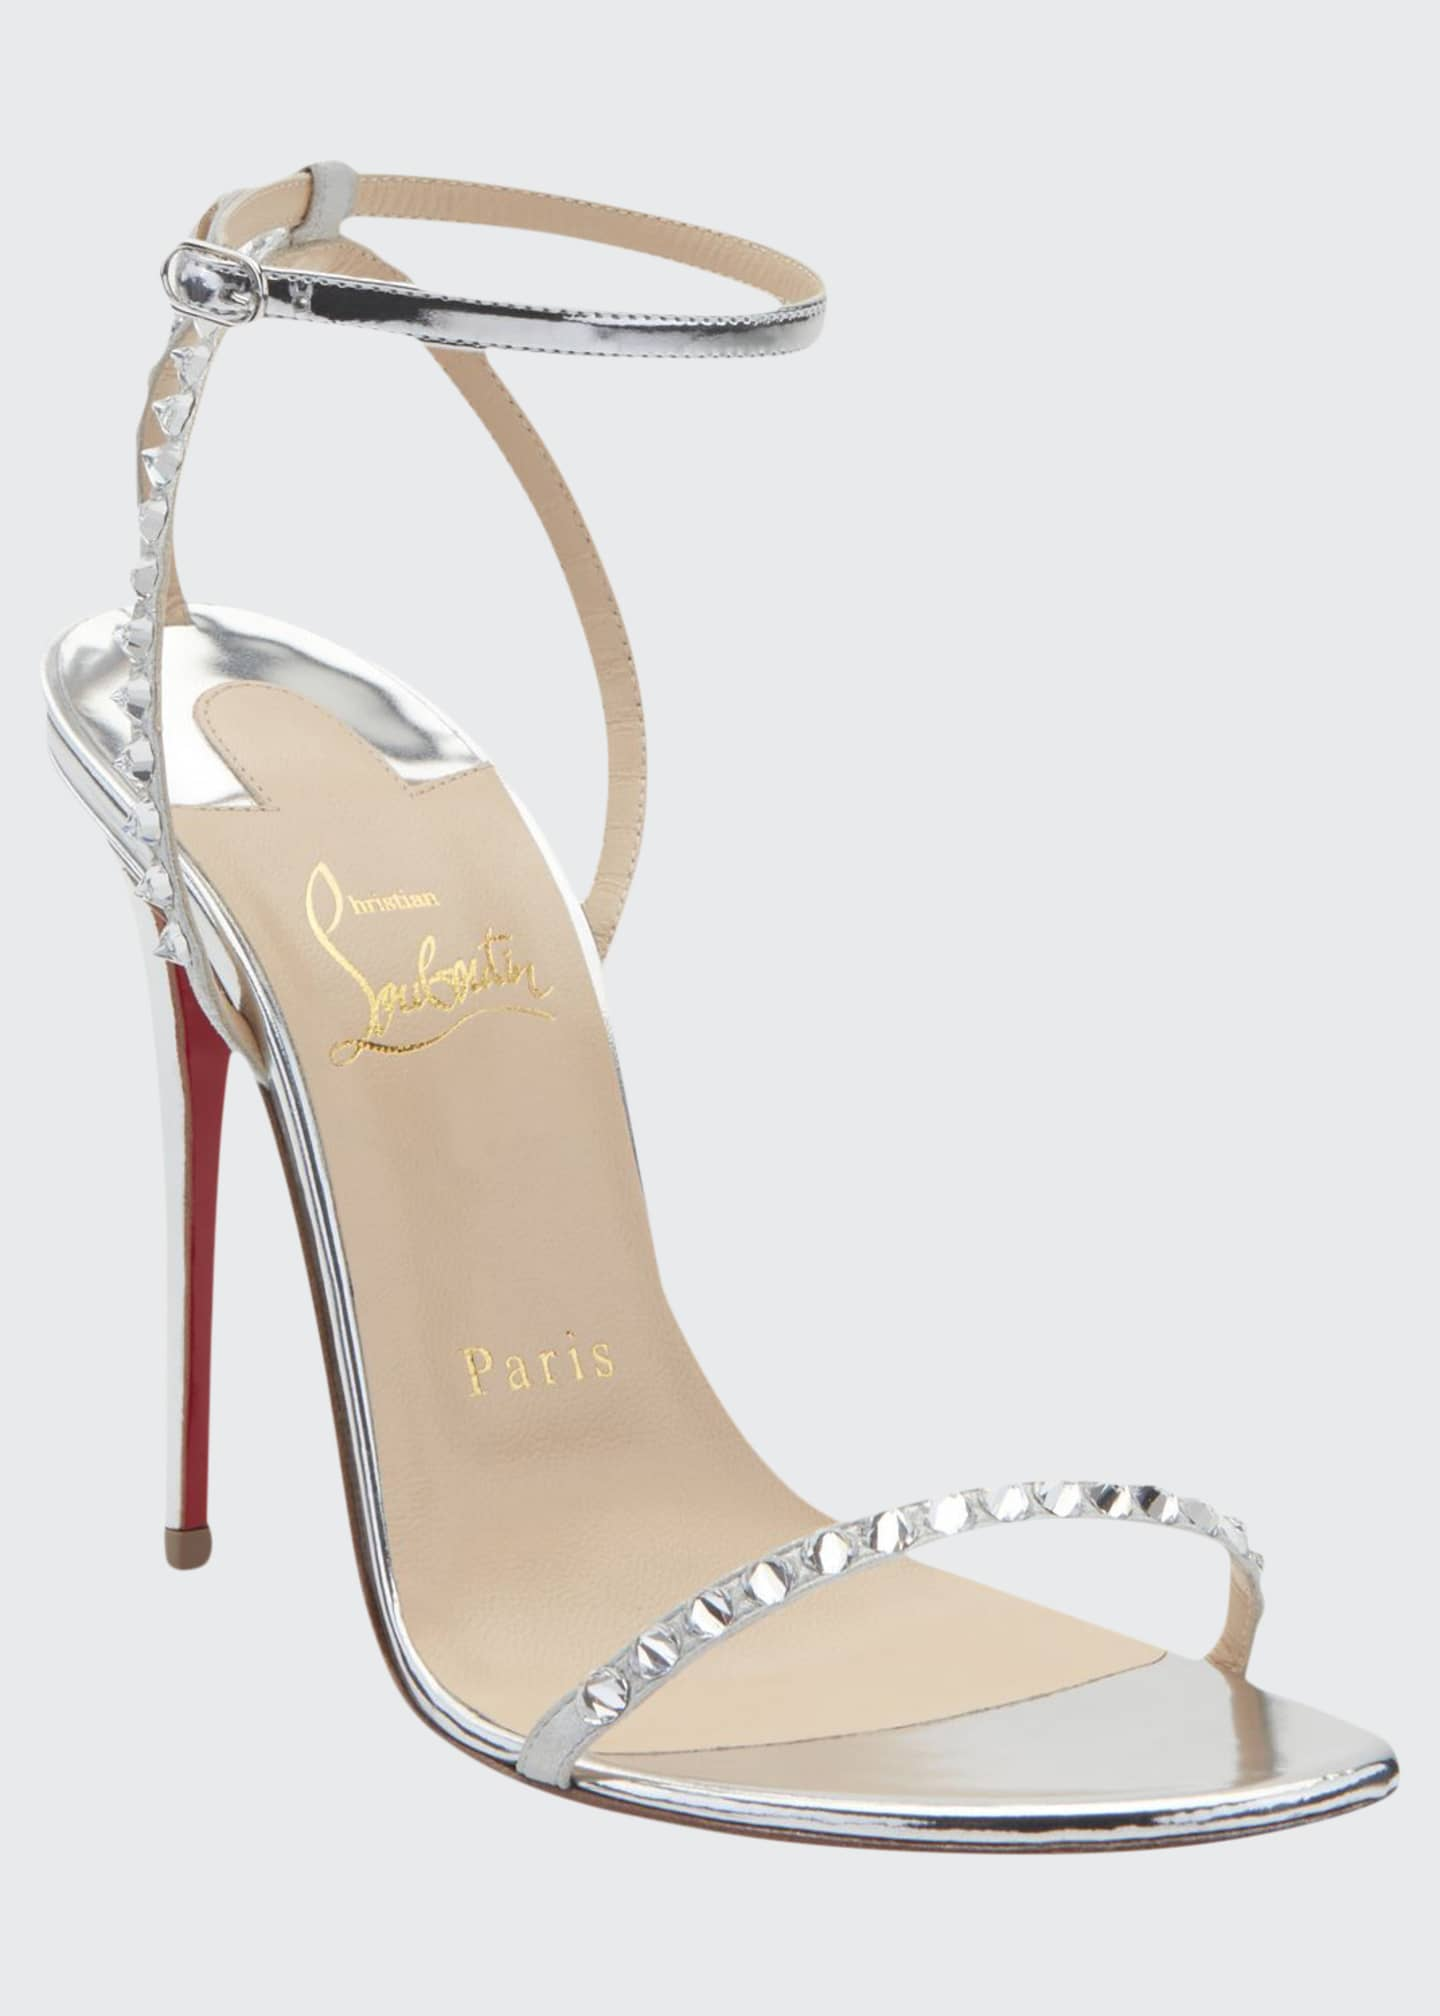 Christian Louboutin Planetava Spike Red Sole Sandals